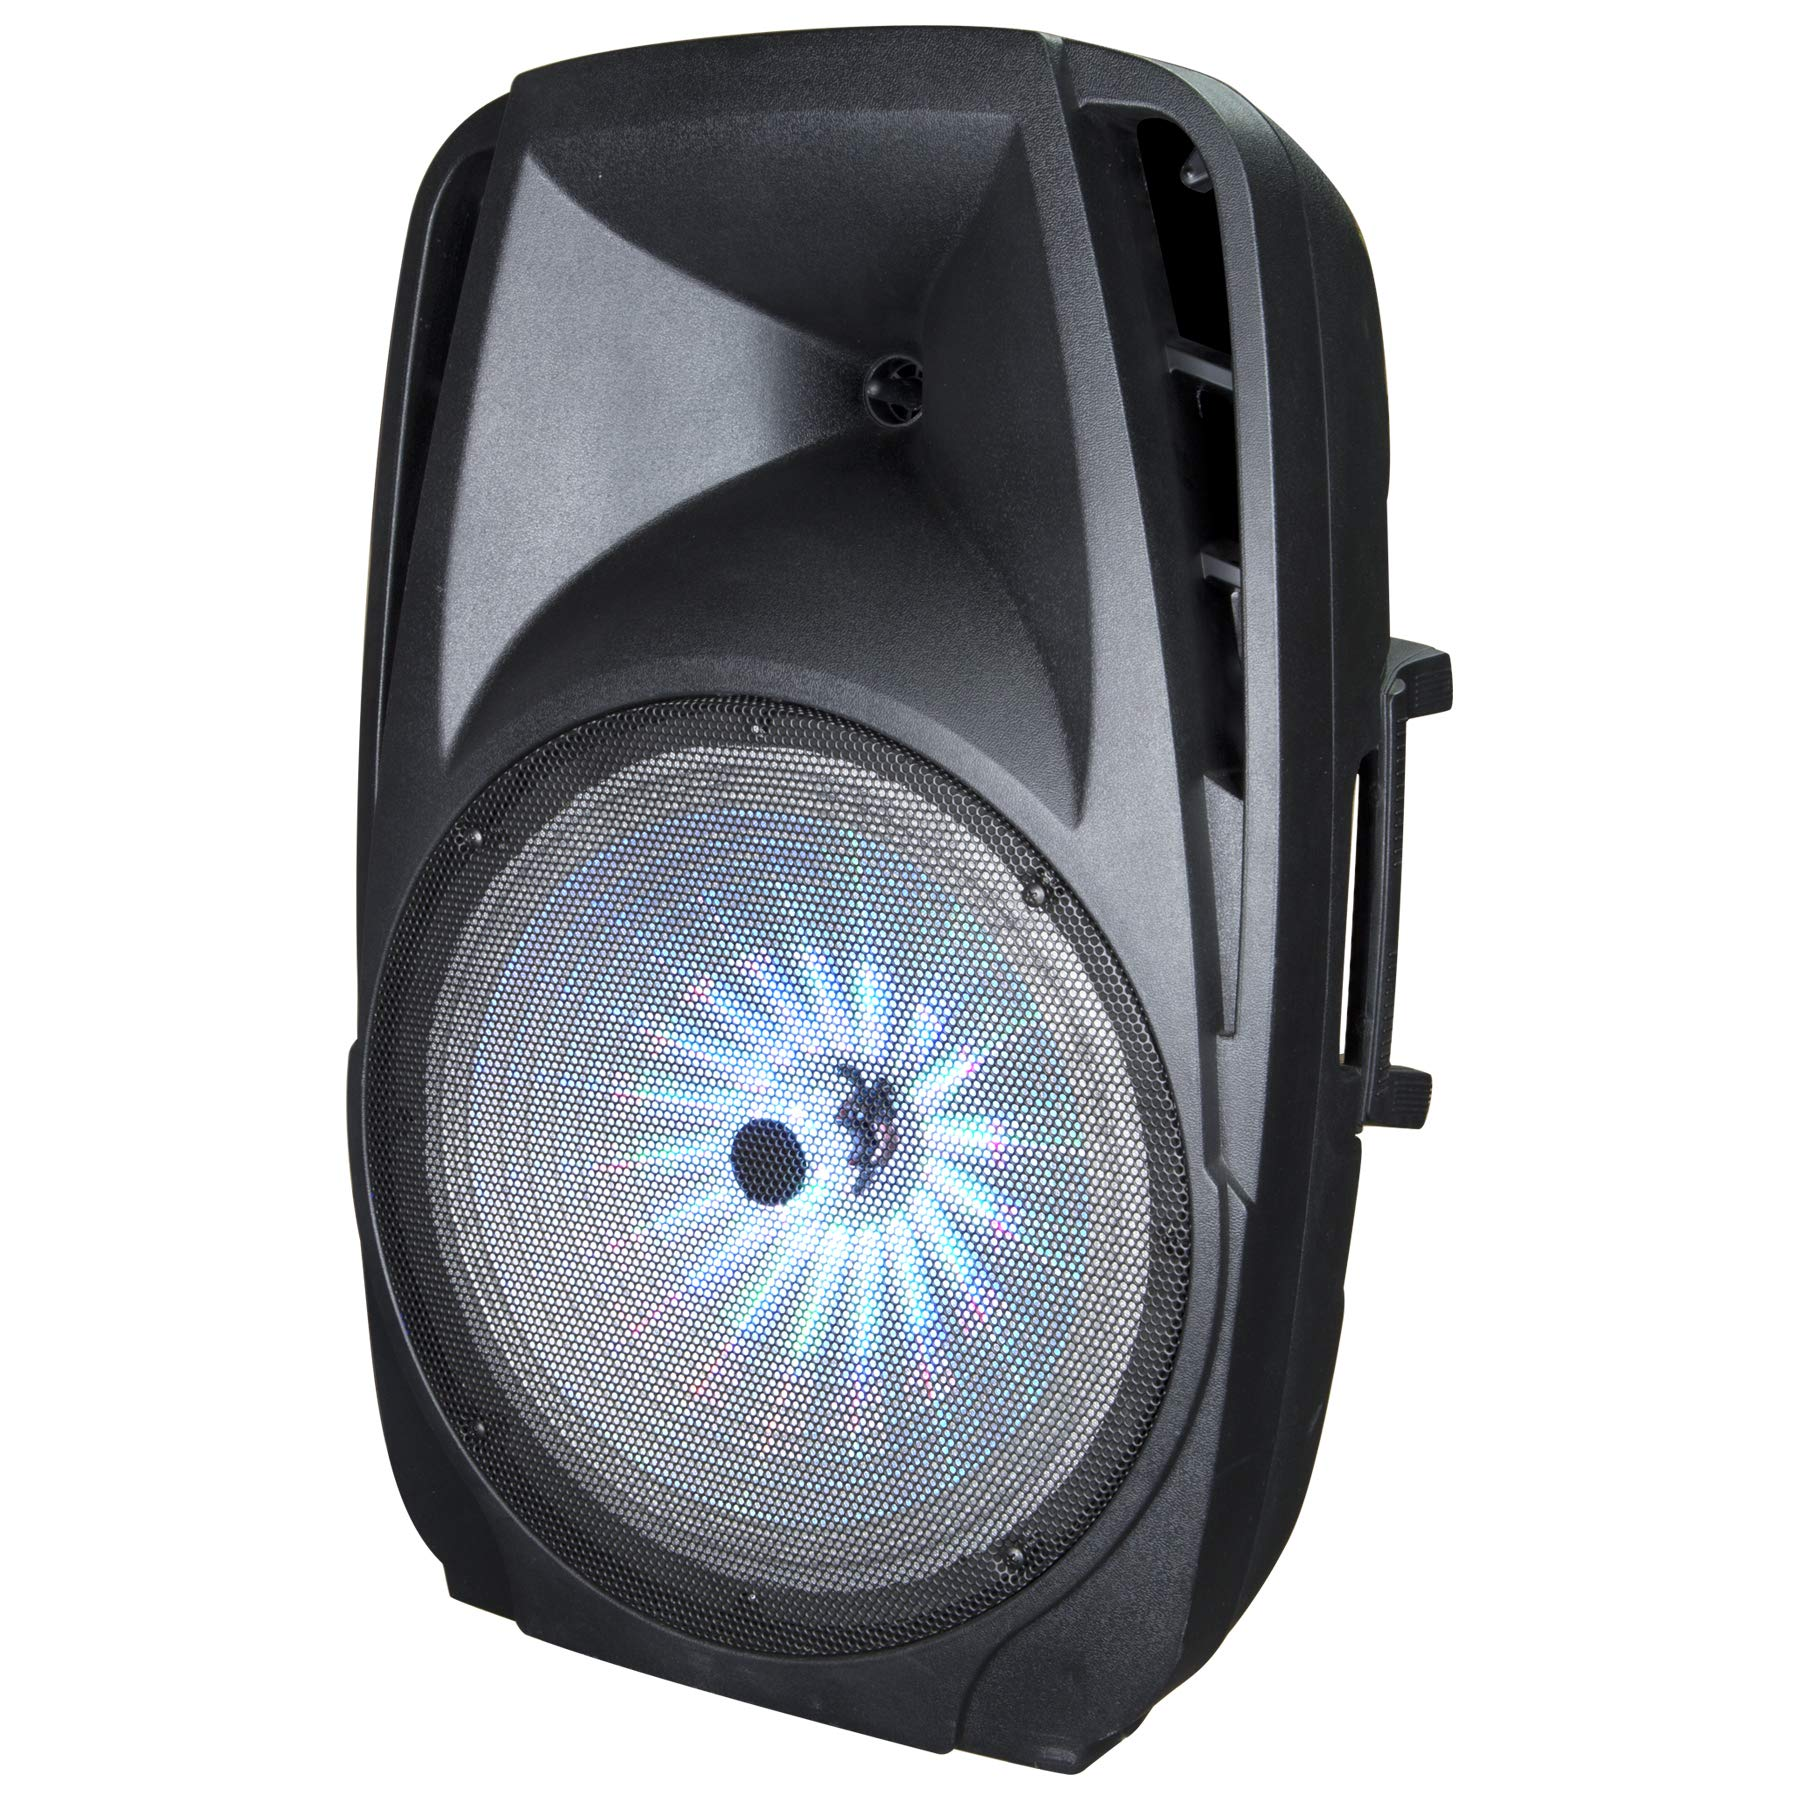 iLive ISB718B Wireless Tailgate Party Speaker, with LED Light Effects and Built-in Rechargeable Battery, Black